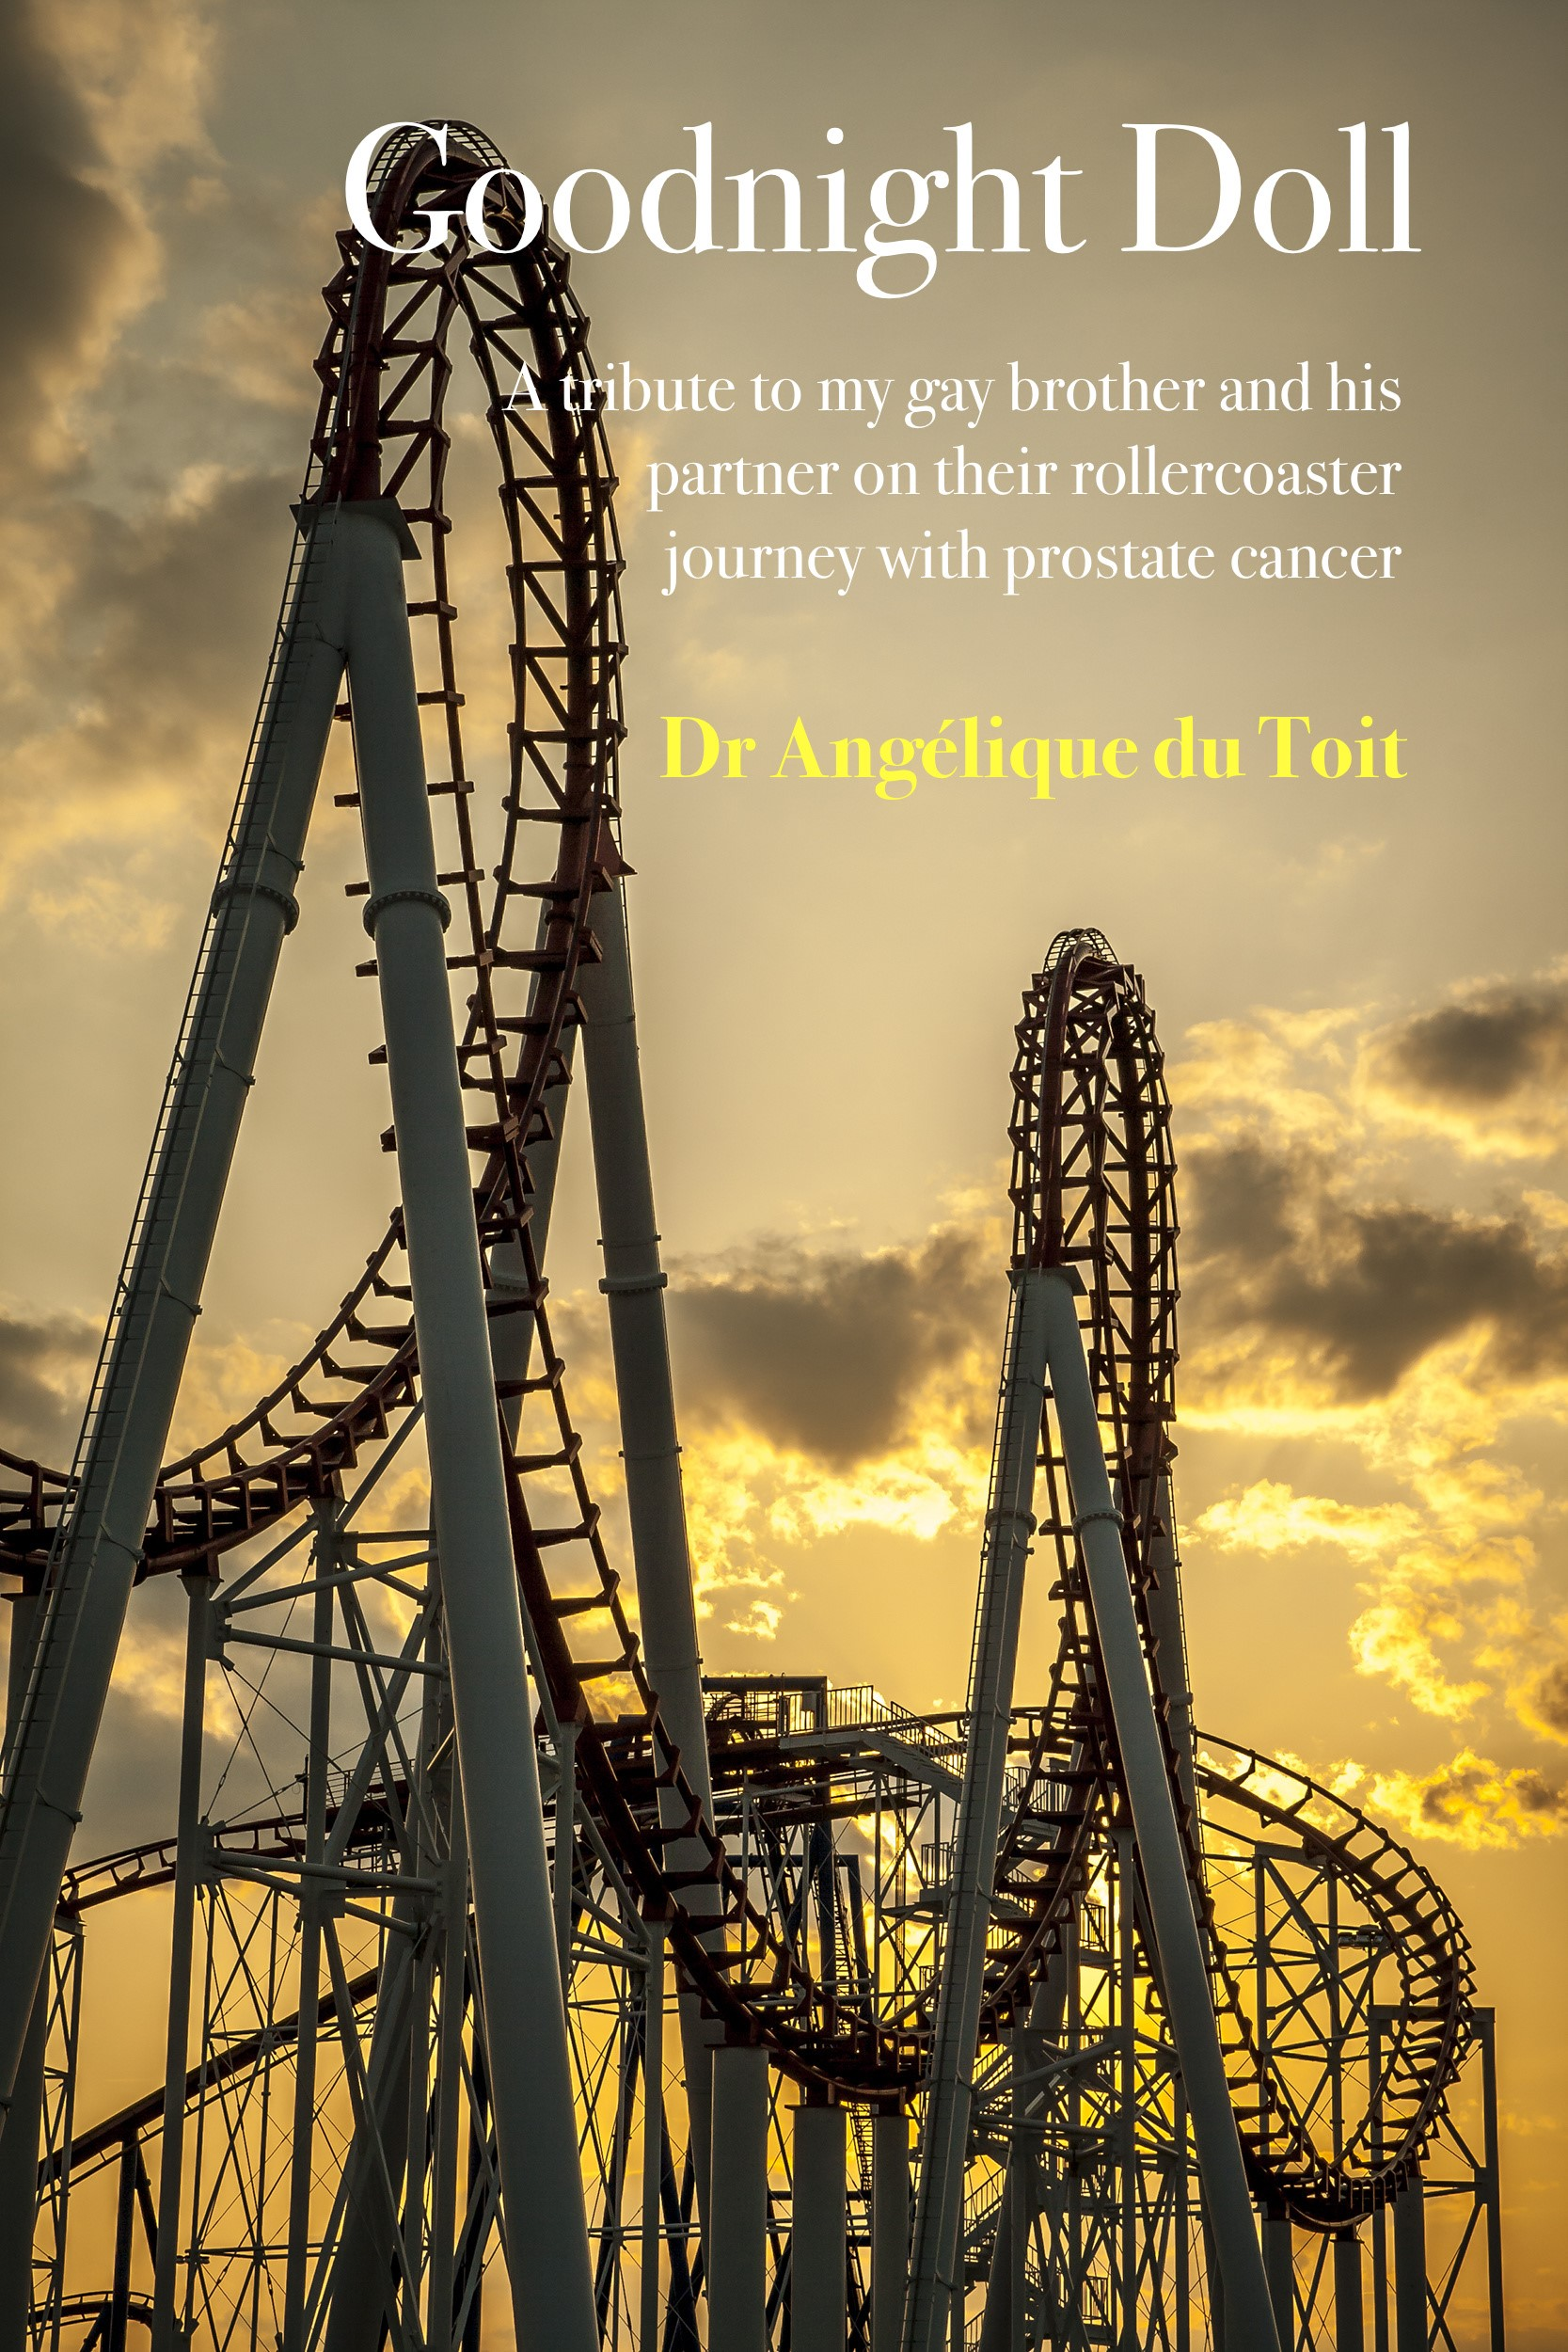 'Goodnight Doll: A tribute to my gay brother and his partner on their rollercoaster journey with prostate cancer' + 'Dr Angelique du Toit' over white/yellow image of rollercoaster tracks